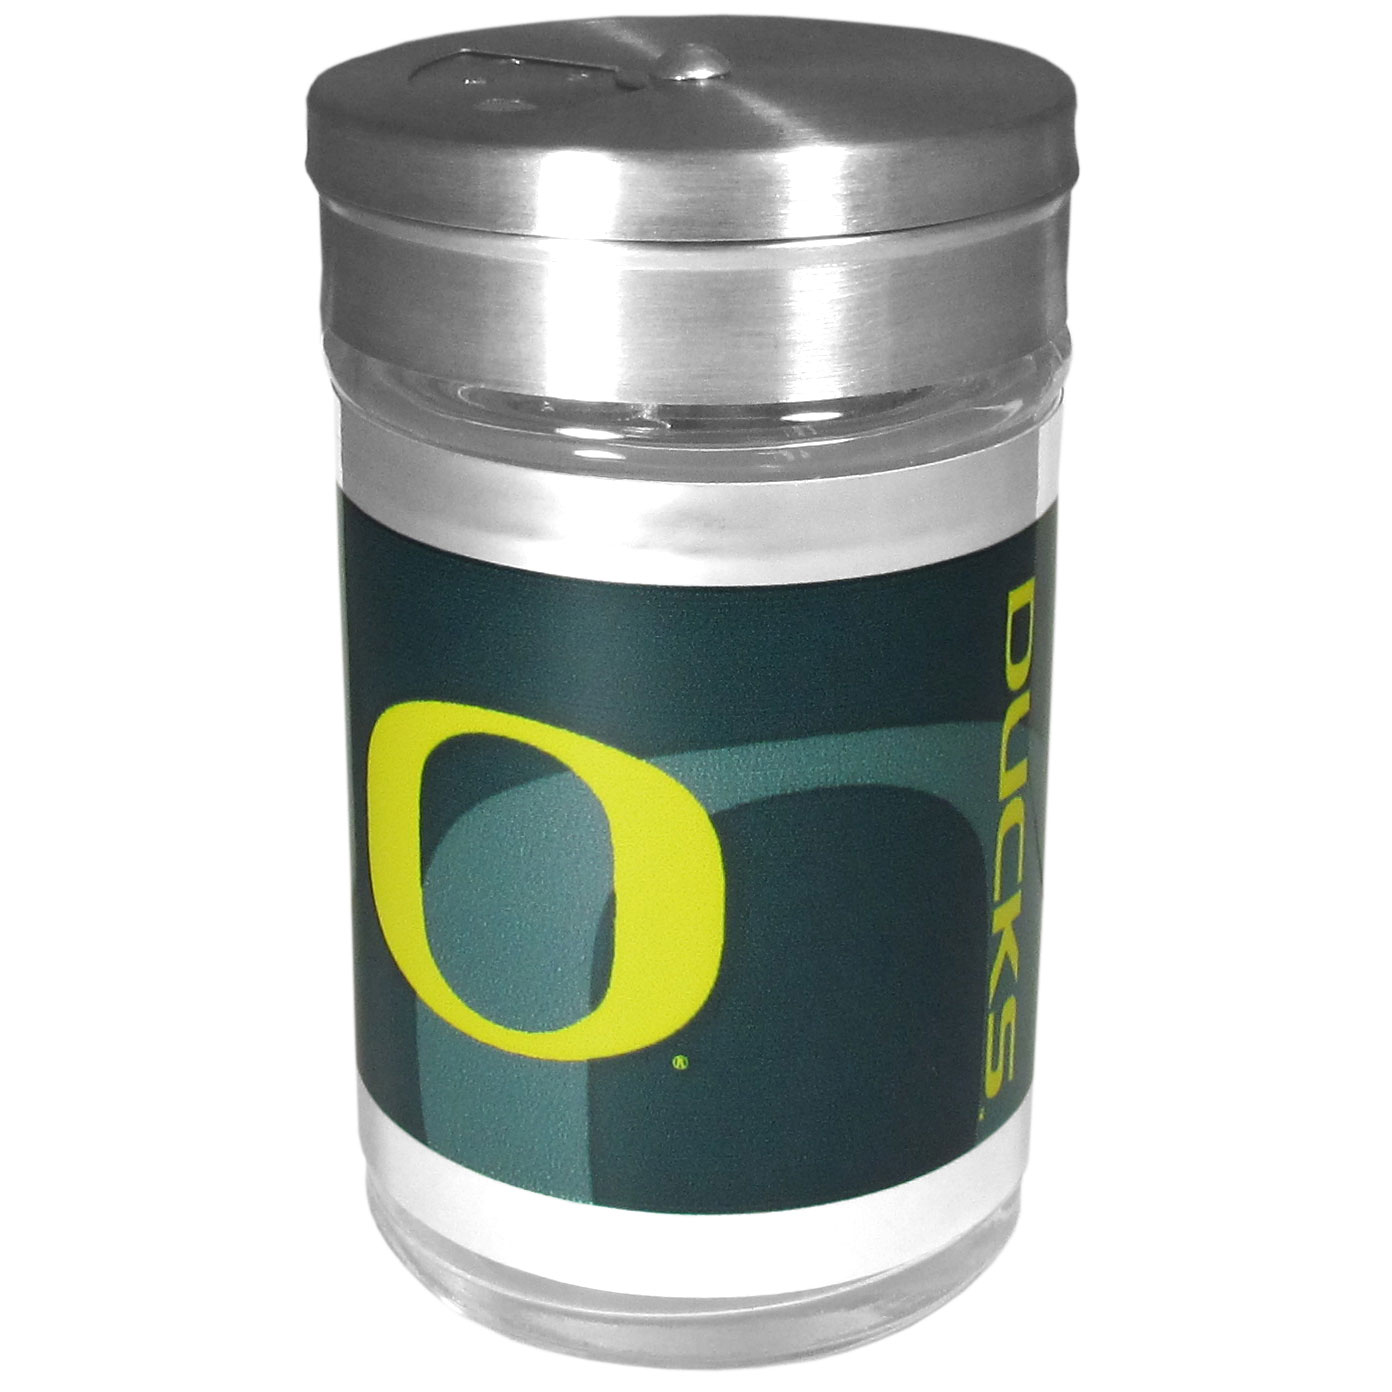 Oregon Ducks Tailgater Season Shakers - Spice it up with our Oregon Ducks tailgater season shakers! This compact shaker is 2 inch tall with a twist top that closes off the holes at the top making it perfect for travel preventing those messy spills. The shaker has wide holes perfect for keeping your pepper seeds or cheese toppings. The bright team graphics will make you the envy of the other fans while you are grilling up your tailgating goodies.